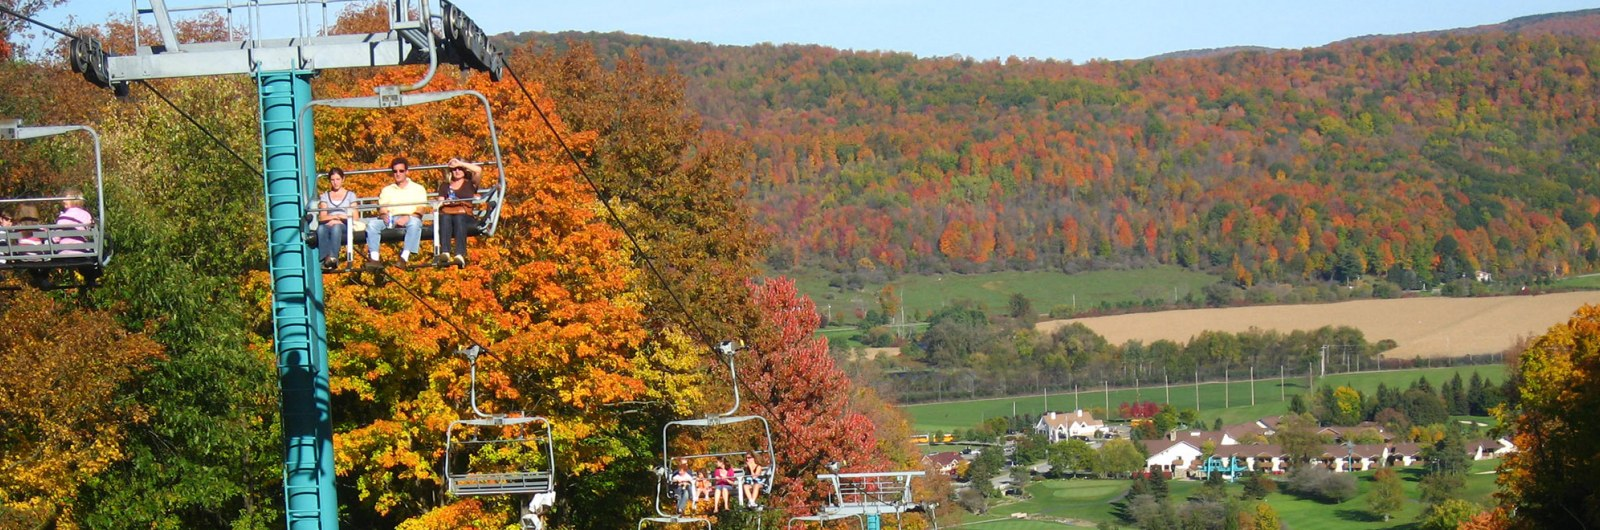 People riding the chairlift at Holiday Valley on a Fall day